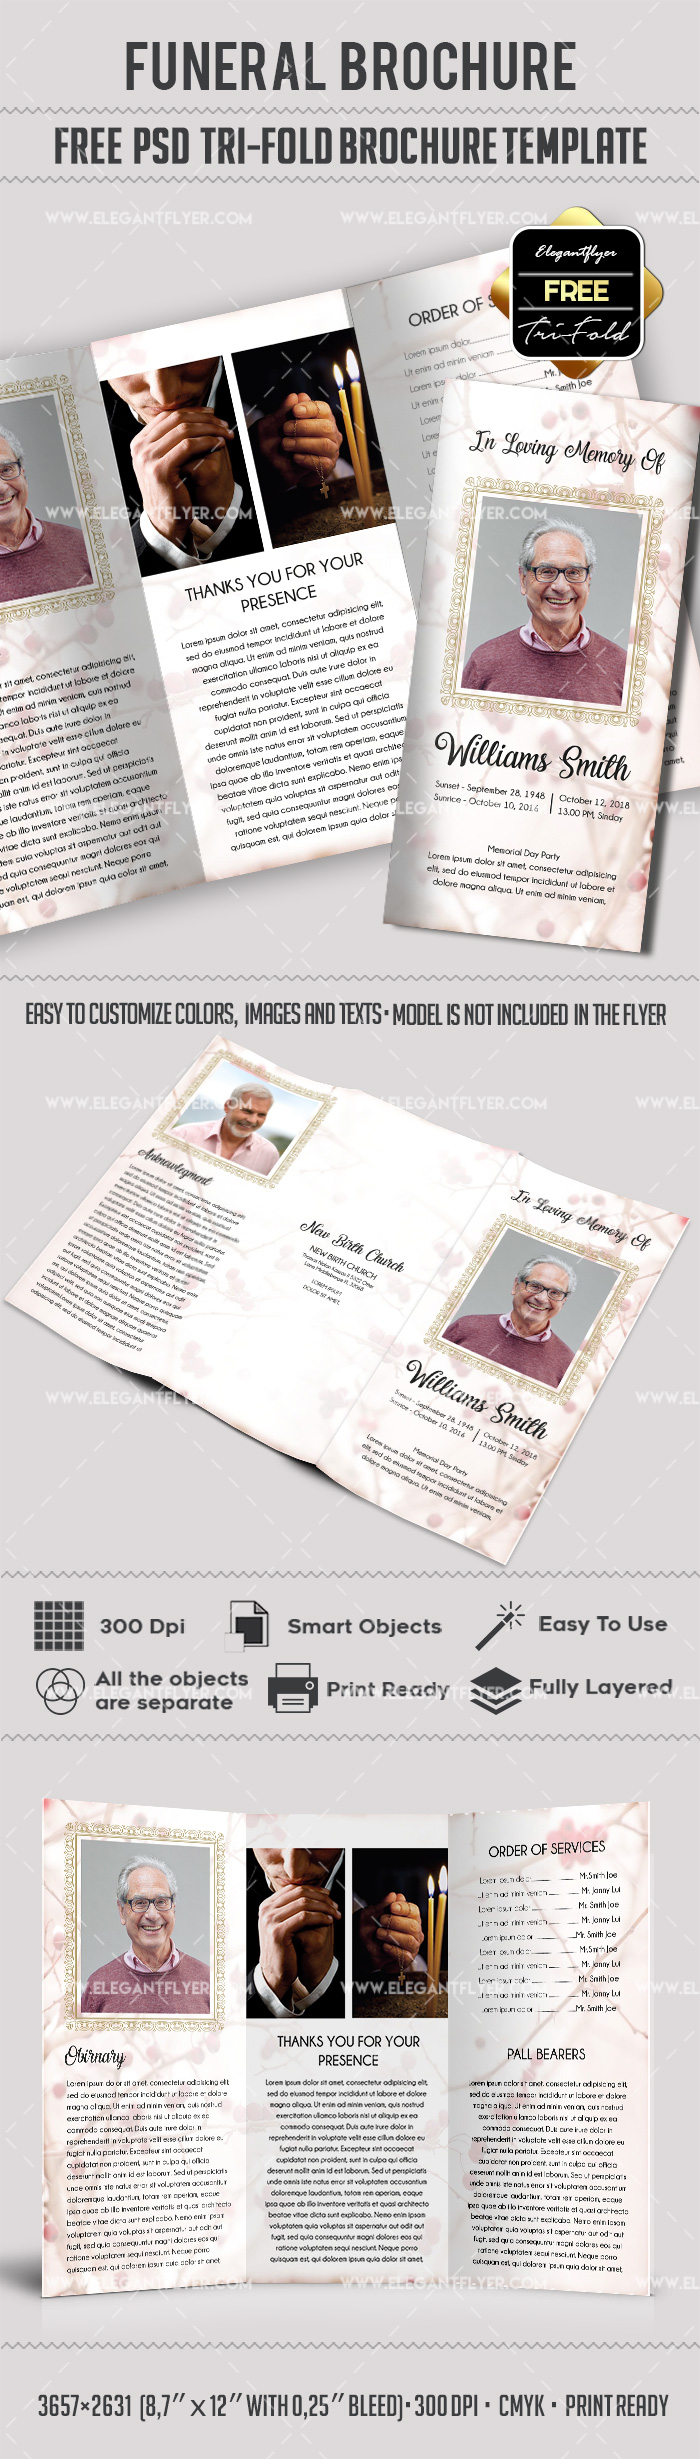 Free Trifold Brochure for Funeral in PSD